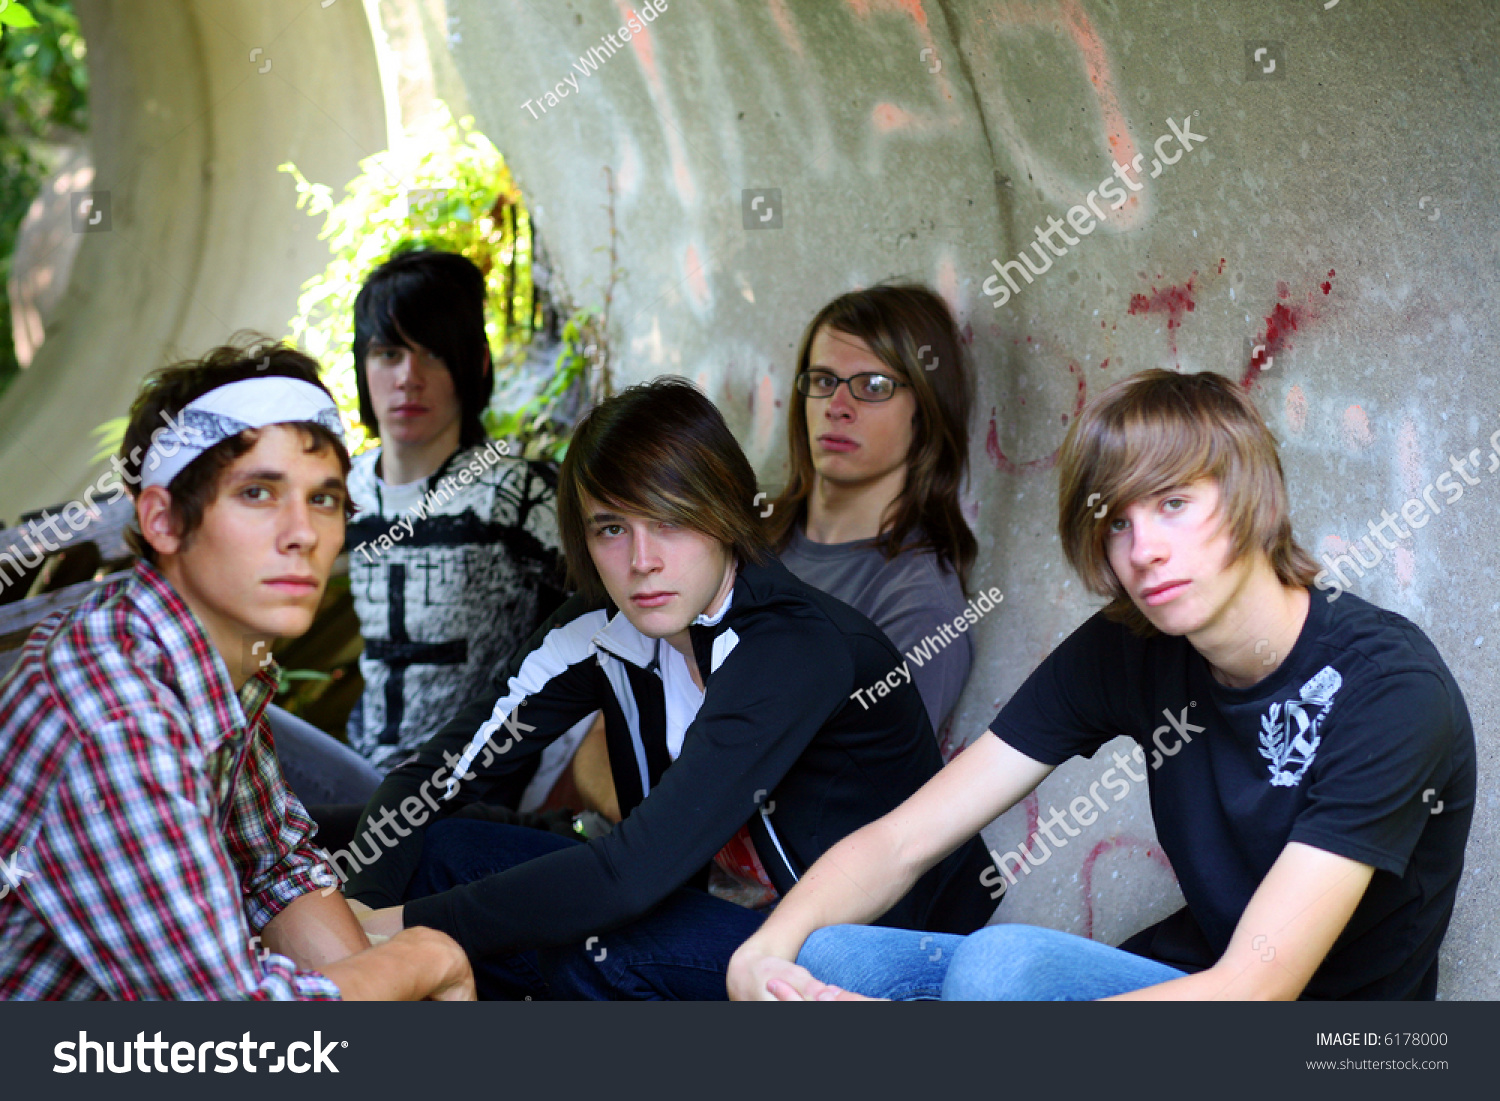 Group Of Teen Boys Hanging Out Stock Photo 6178000 : Shutterstock